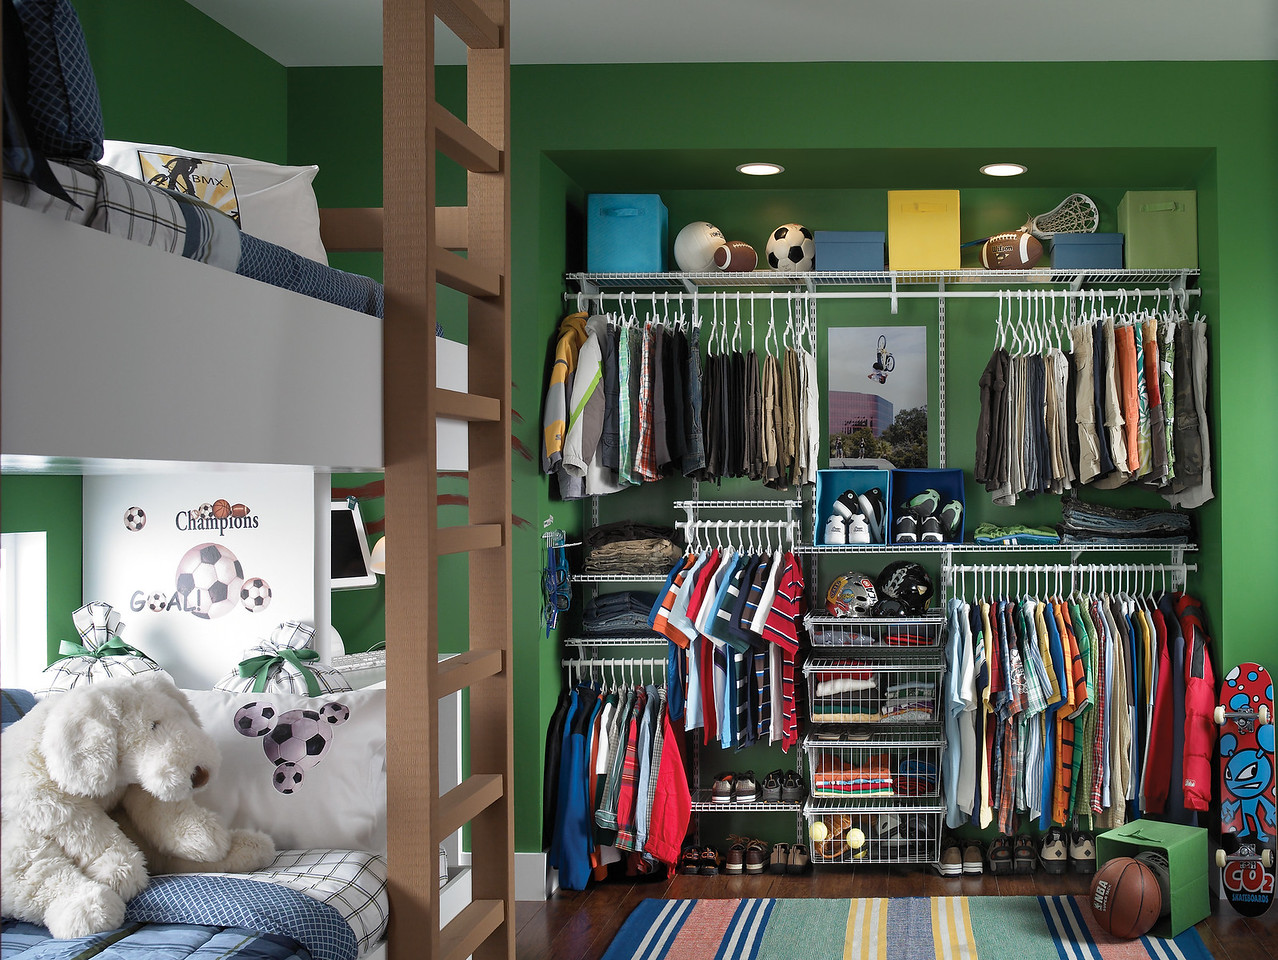 Reach In Closet Featuring ClosetMaid ShelfTrack, An Adjustable Mounting  System.